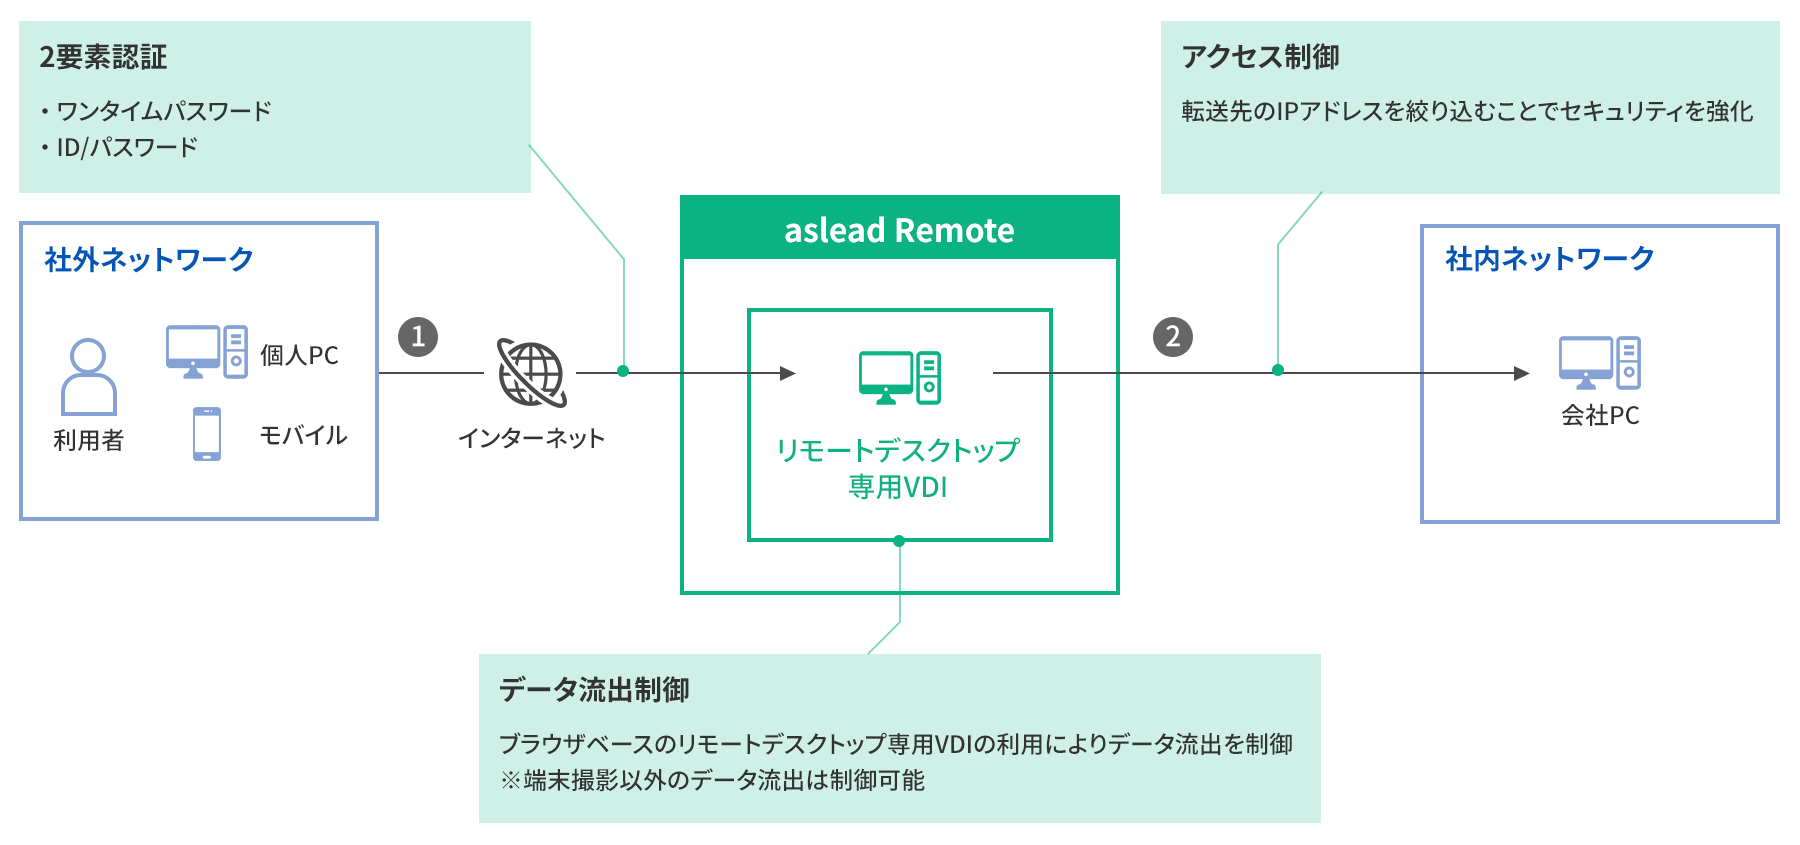 aslead Remoteの概要